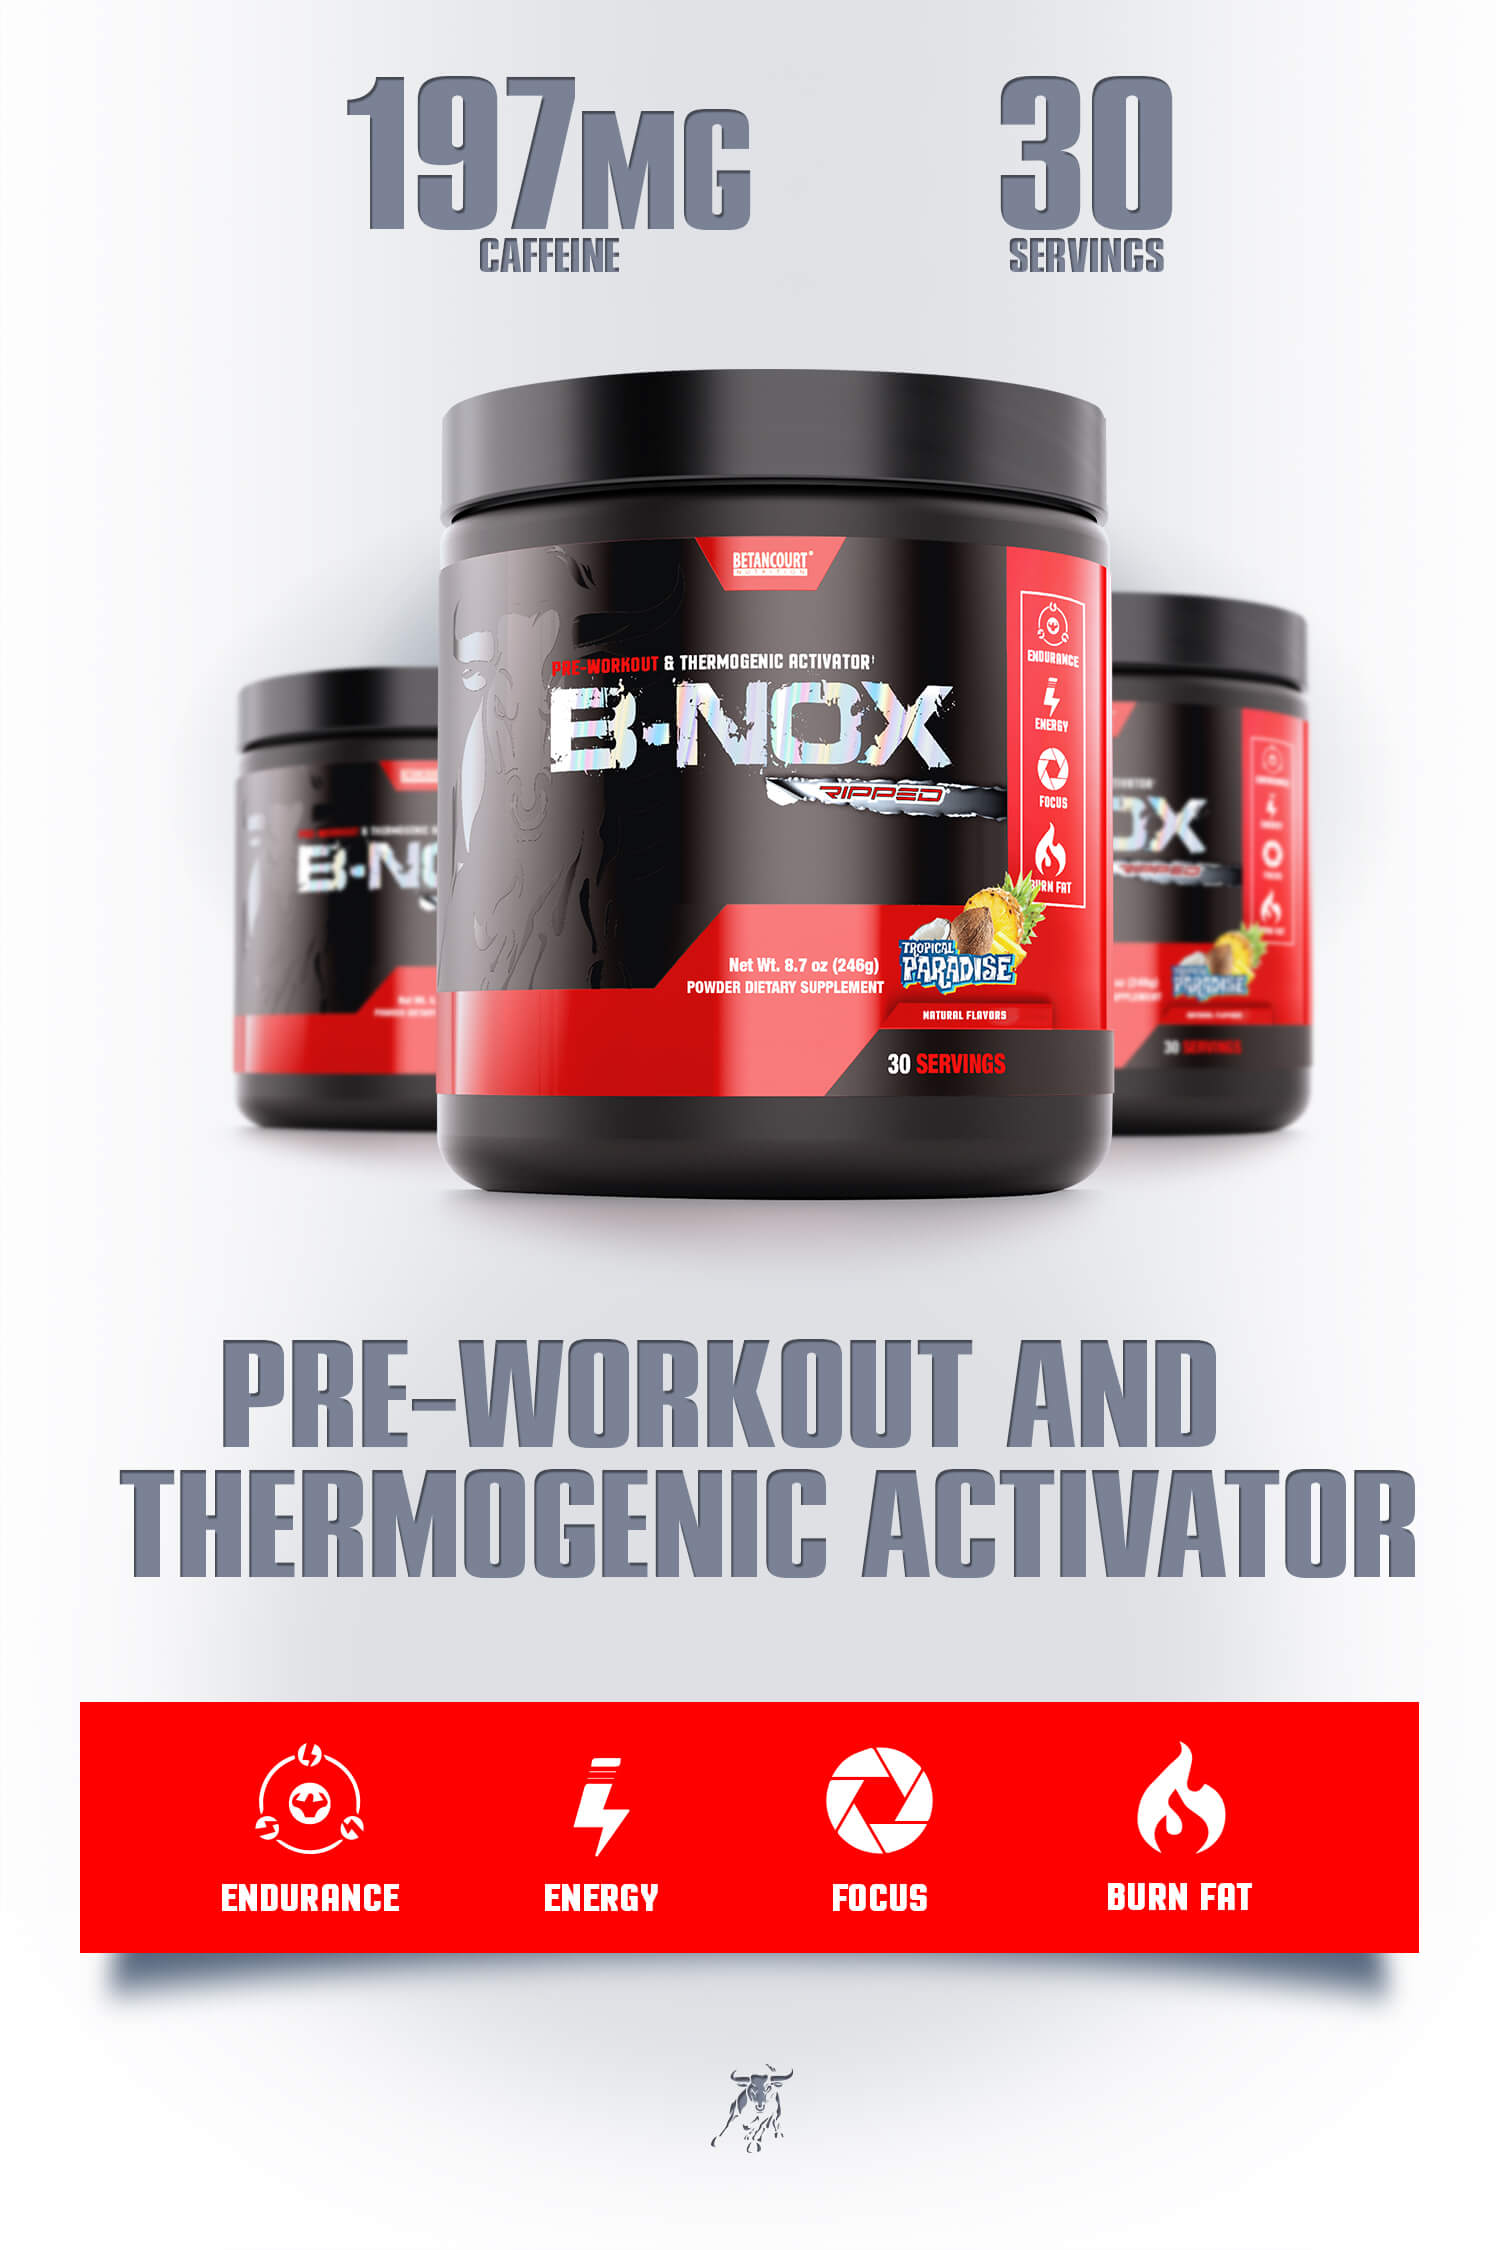 B-NOX Ripped - Betancourt Nutrition - PRE-WORKOUT THERMOGENIC ACTIVATOR